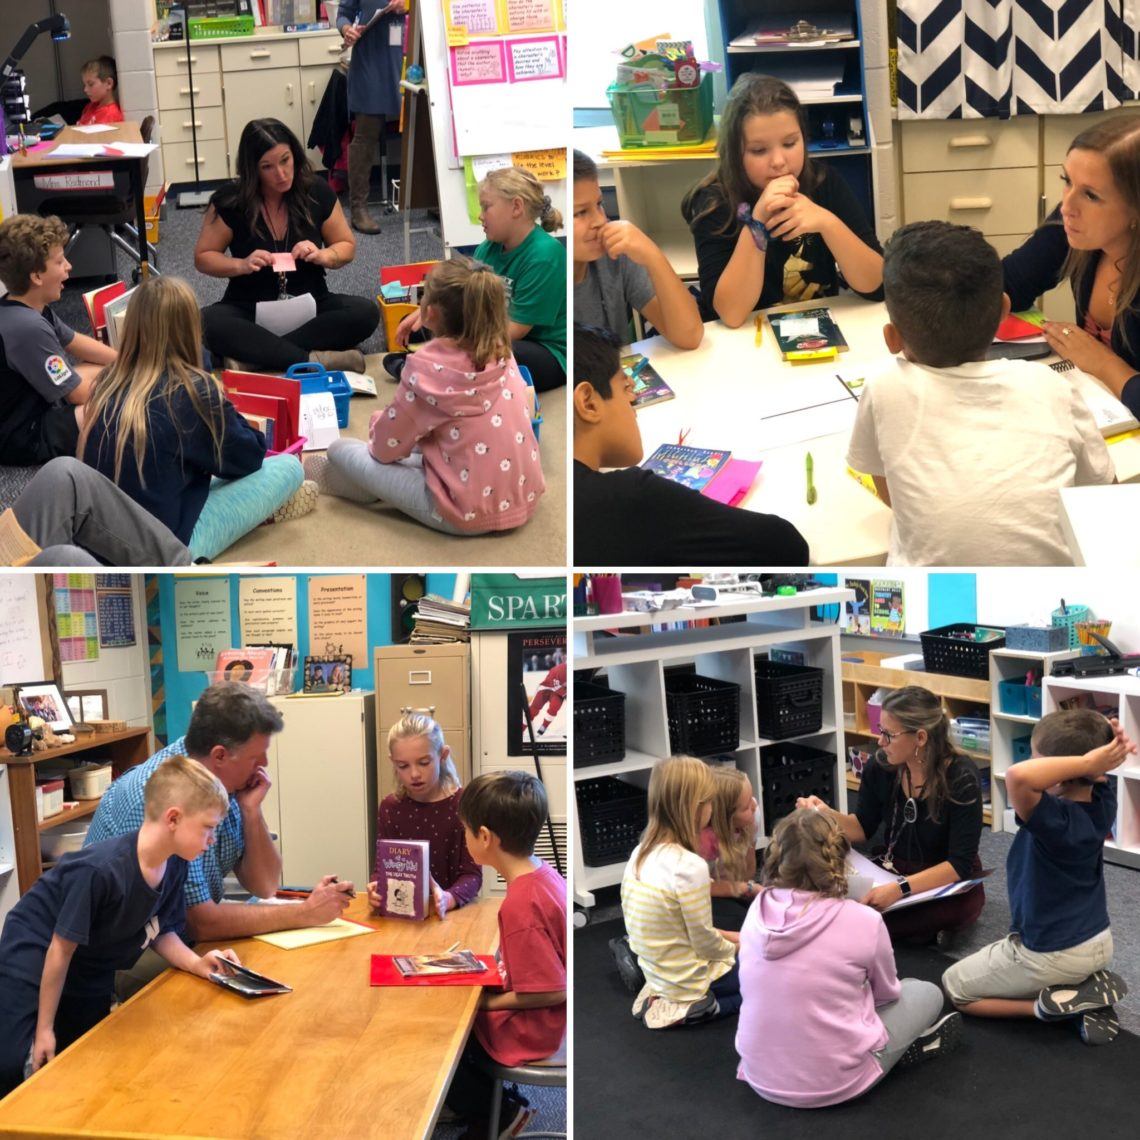 A collage of 4 pictures of students reading books with teachers